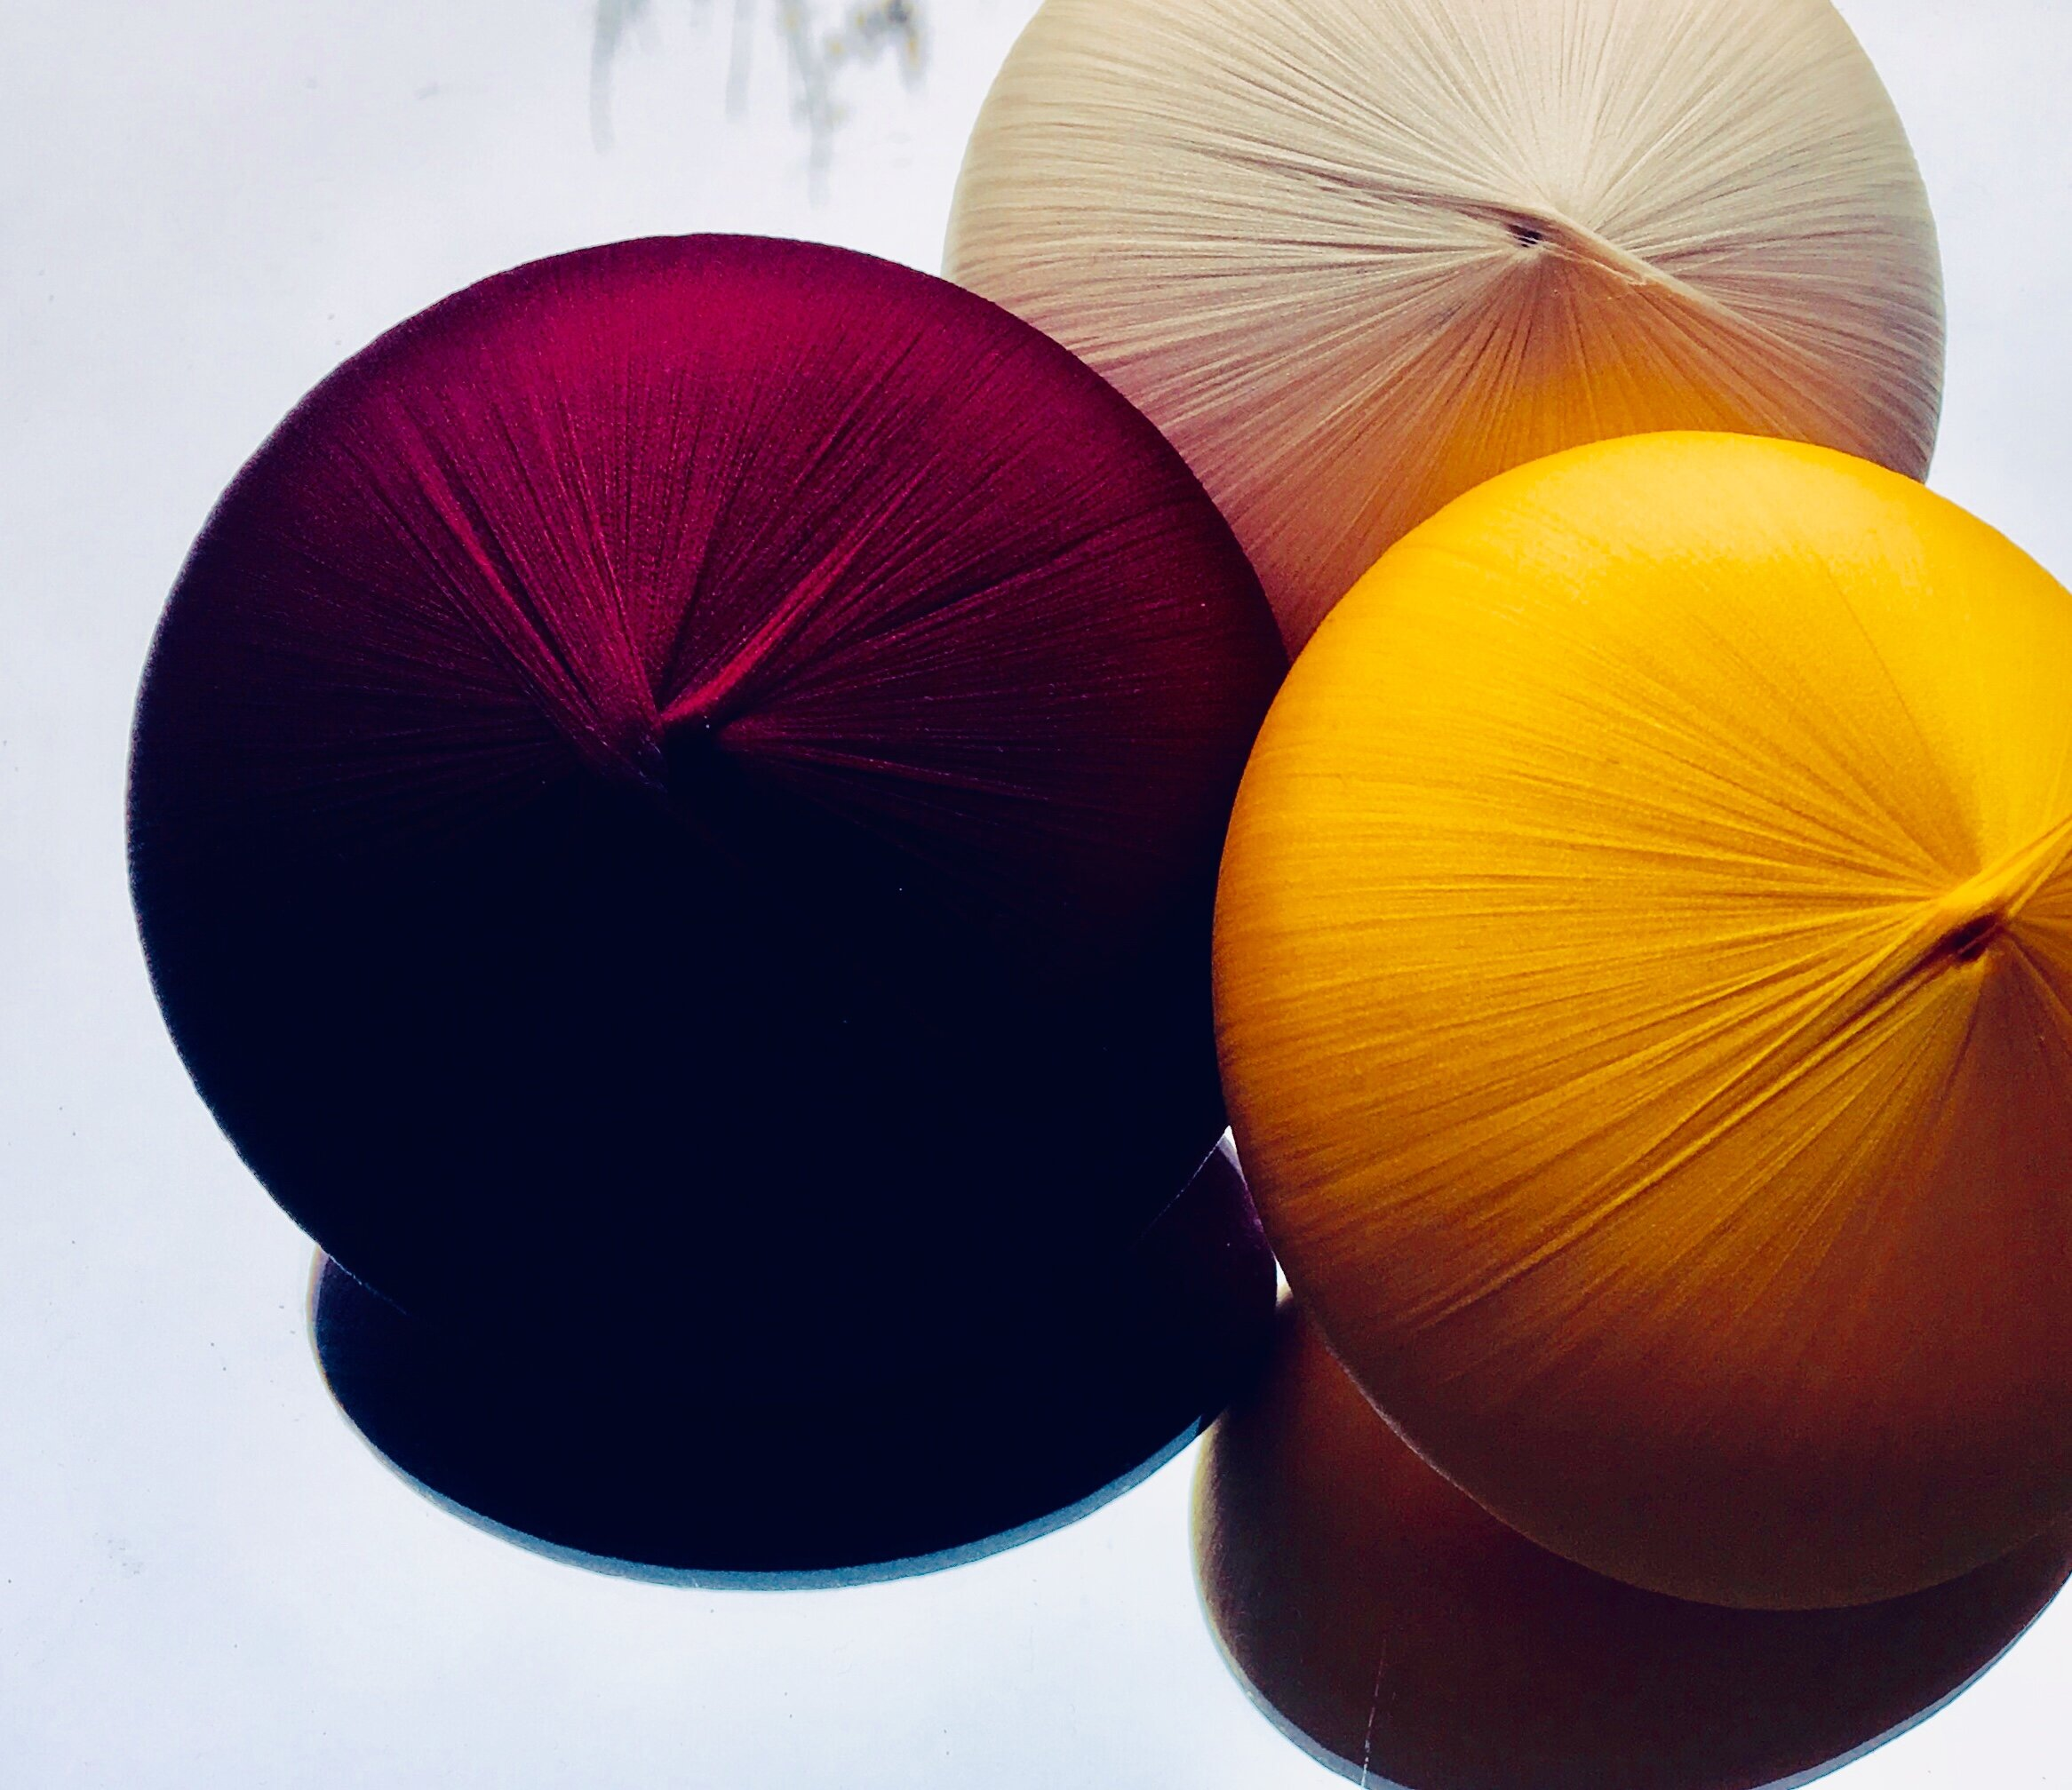 SATIN shapes - the big Saturn in the colours wine, sunflower and ivory